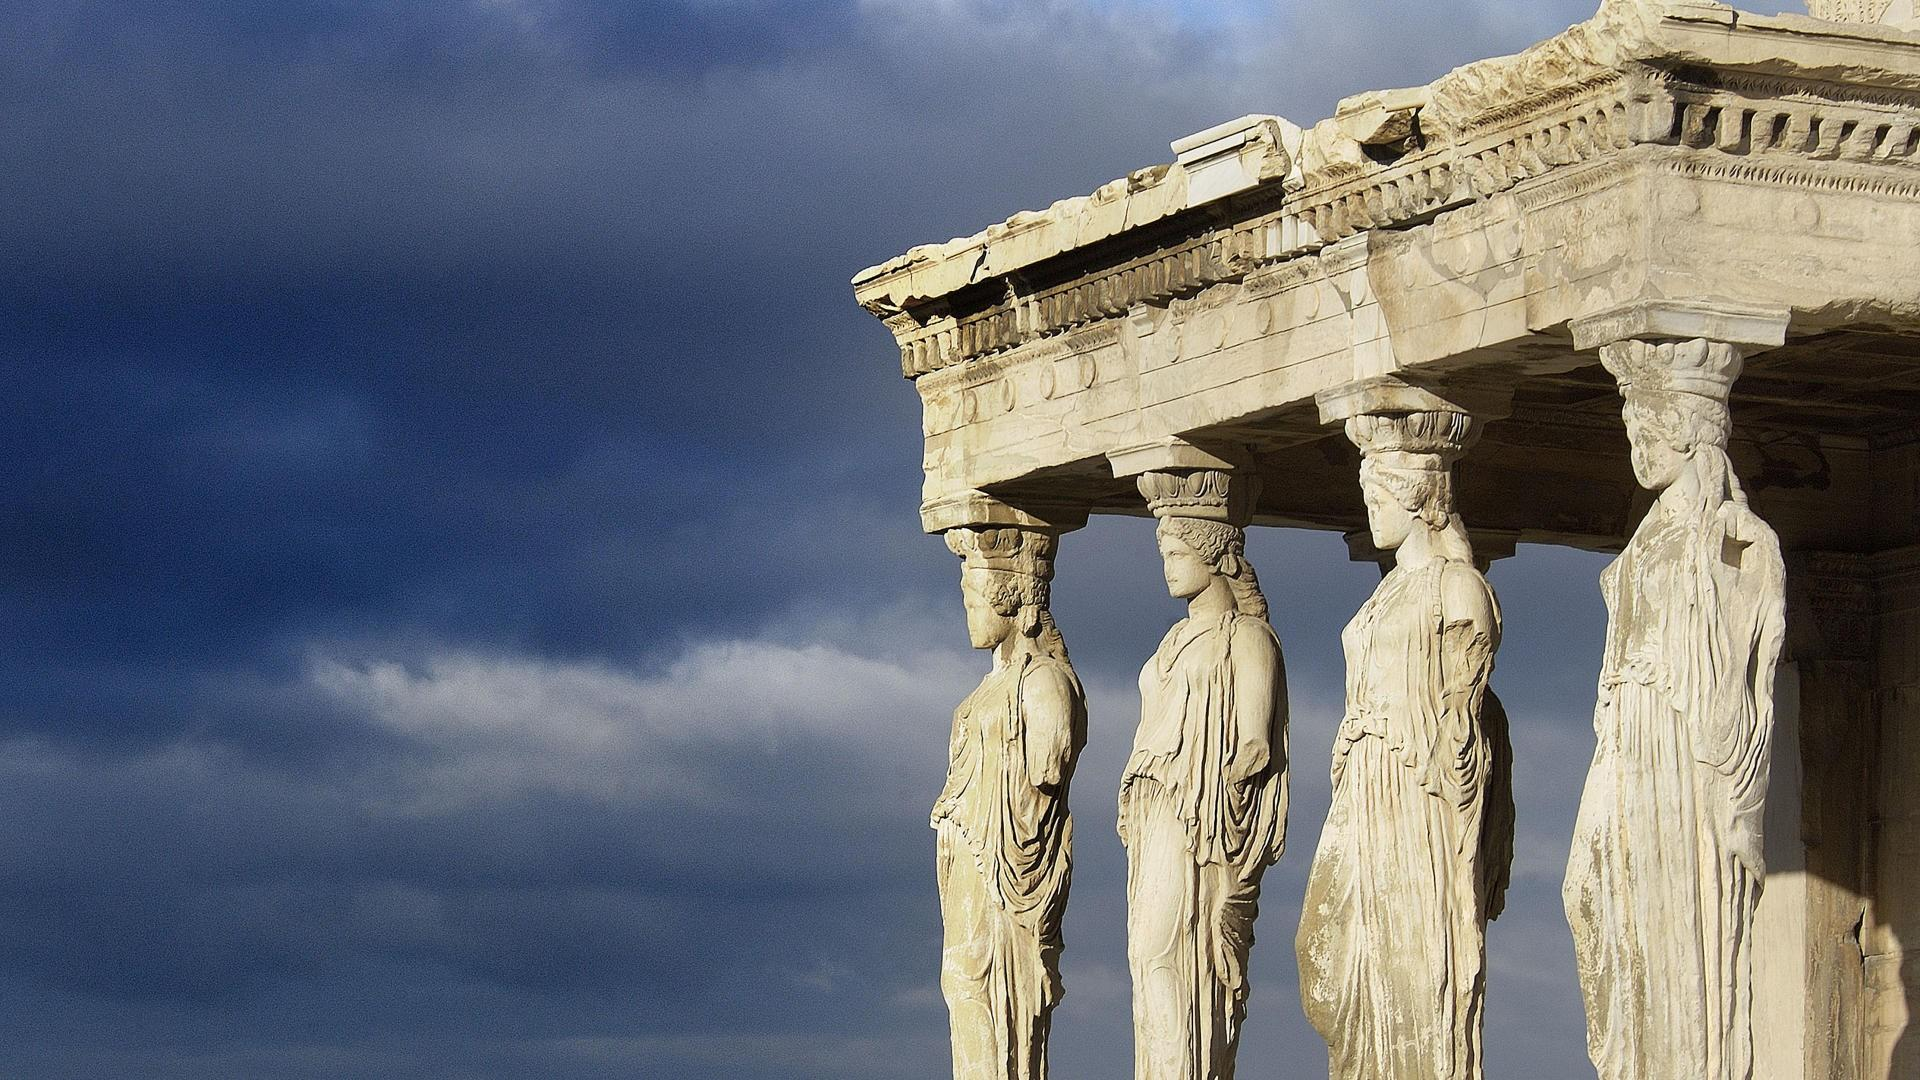 Best 45+ Athens Wallpaper on HipWallpaper | Athens Wallpaper, Athens ...